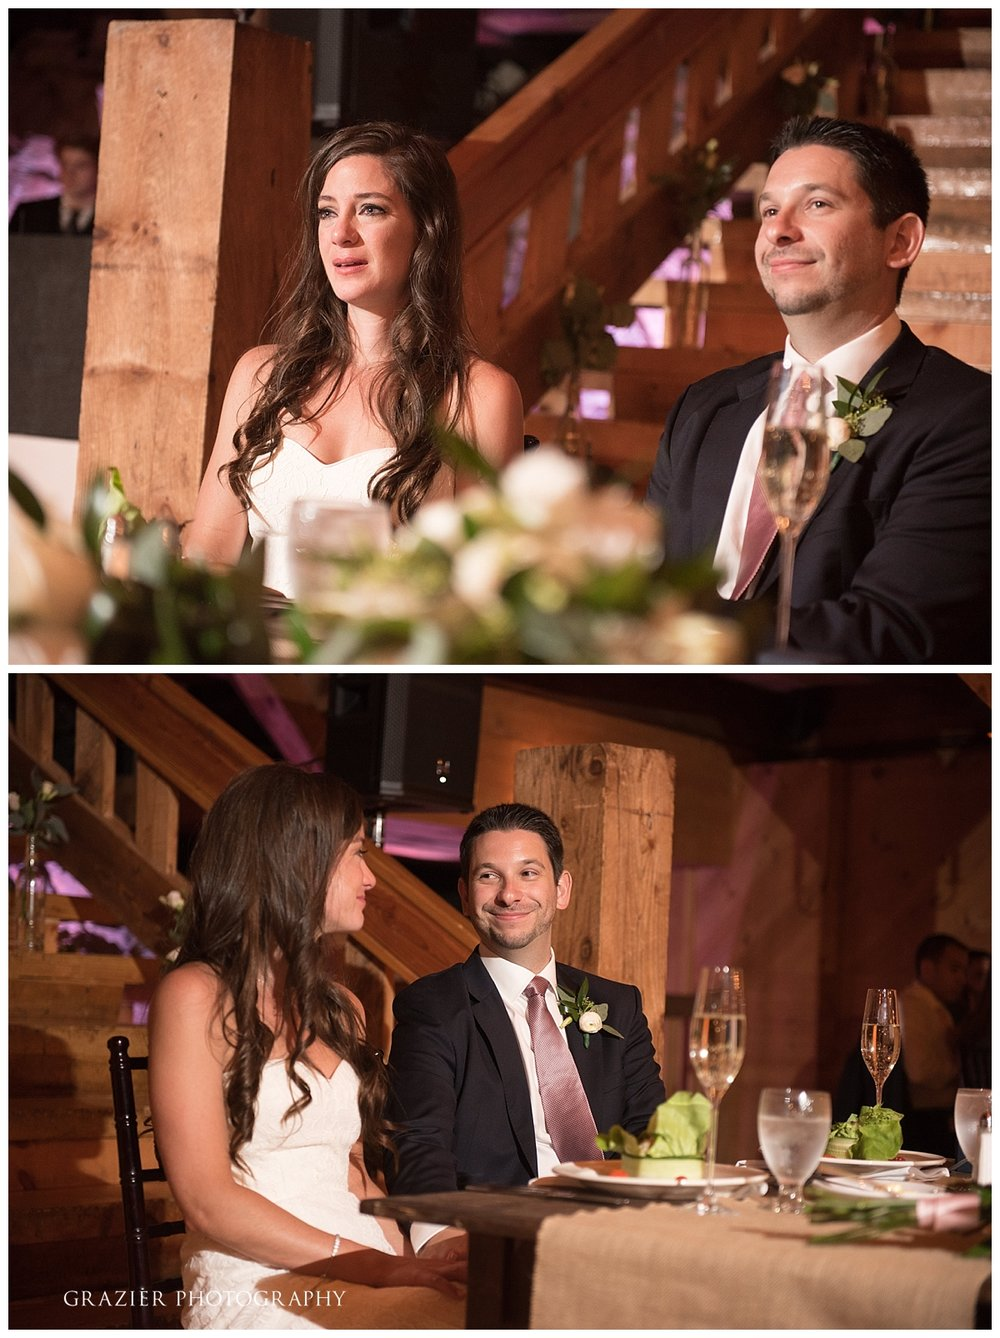 The Red Lion Inn Wedding Grazier Photography 170826-93_WEB.jpg